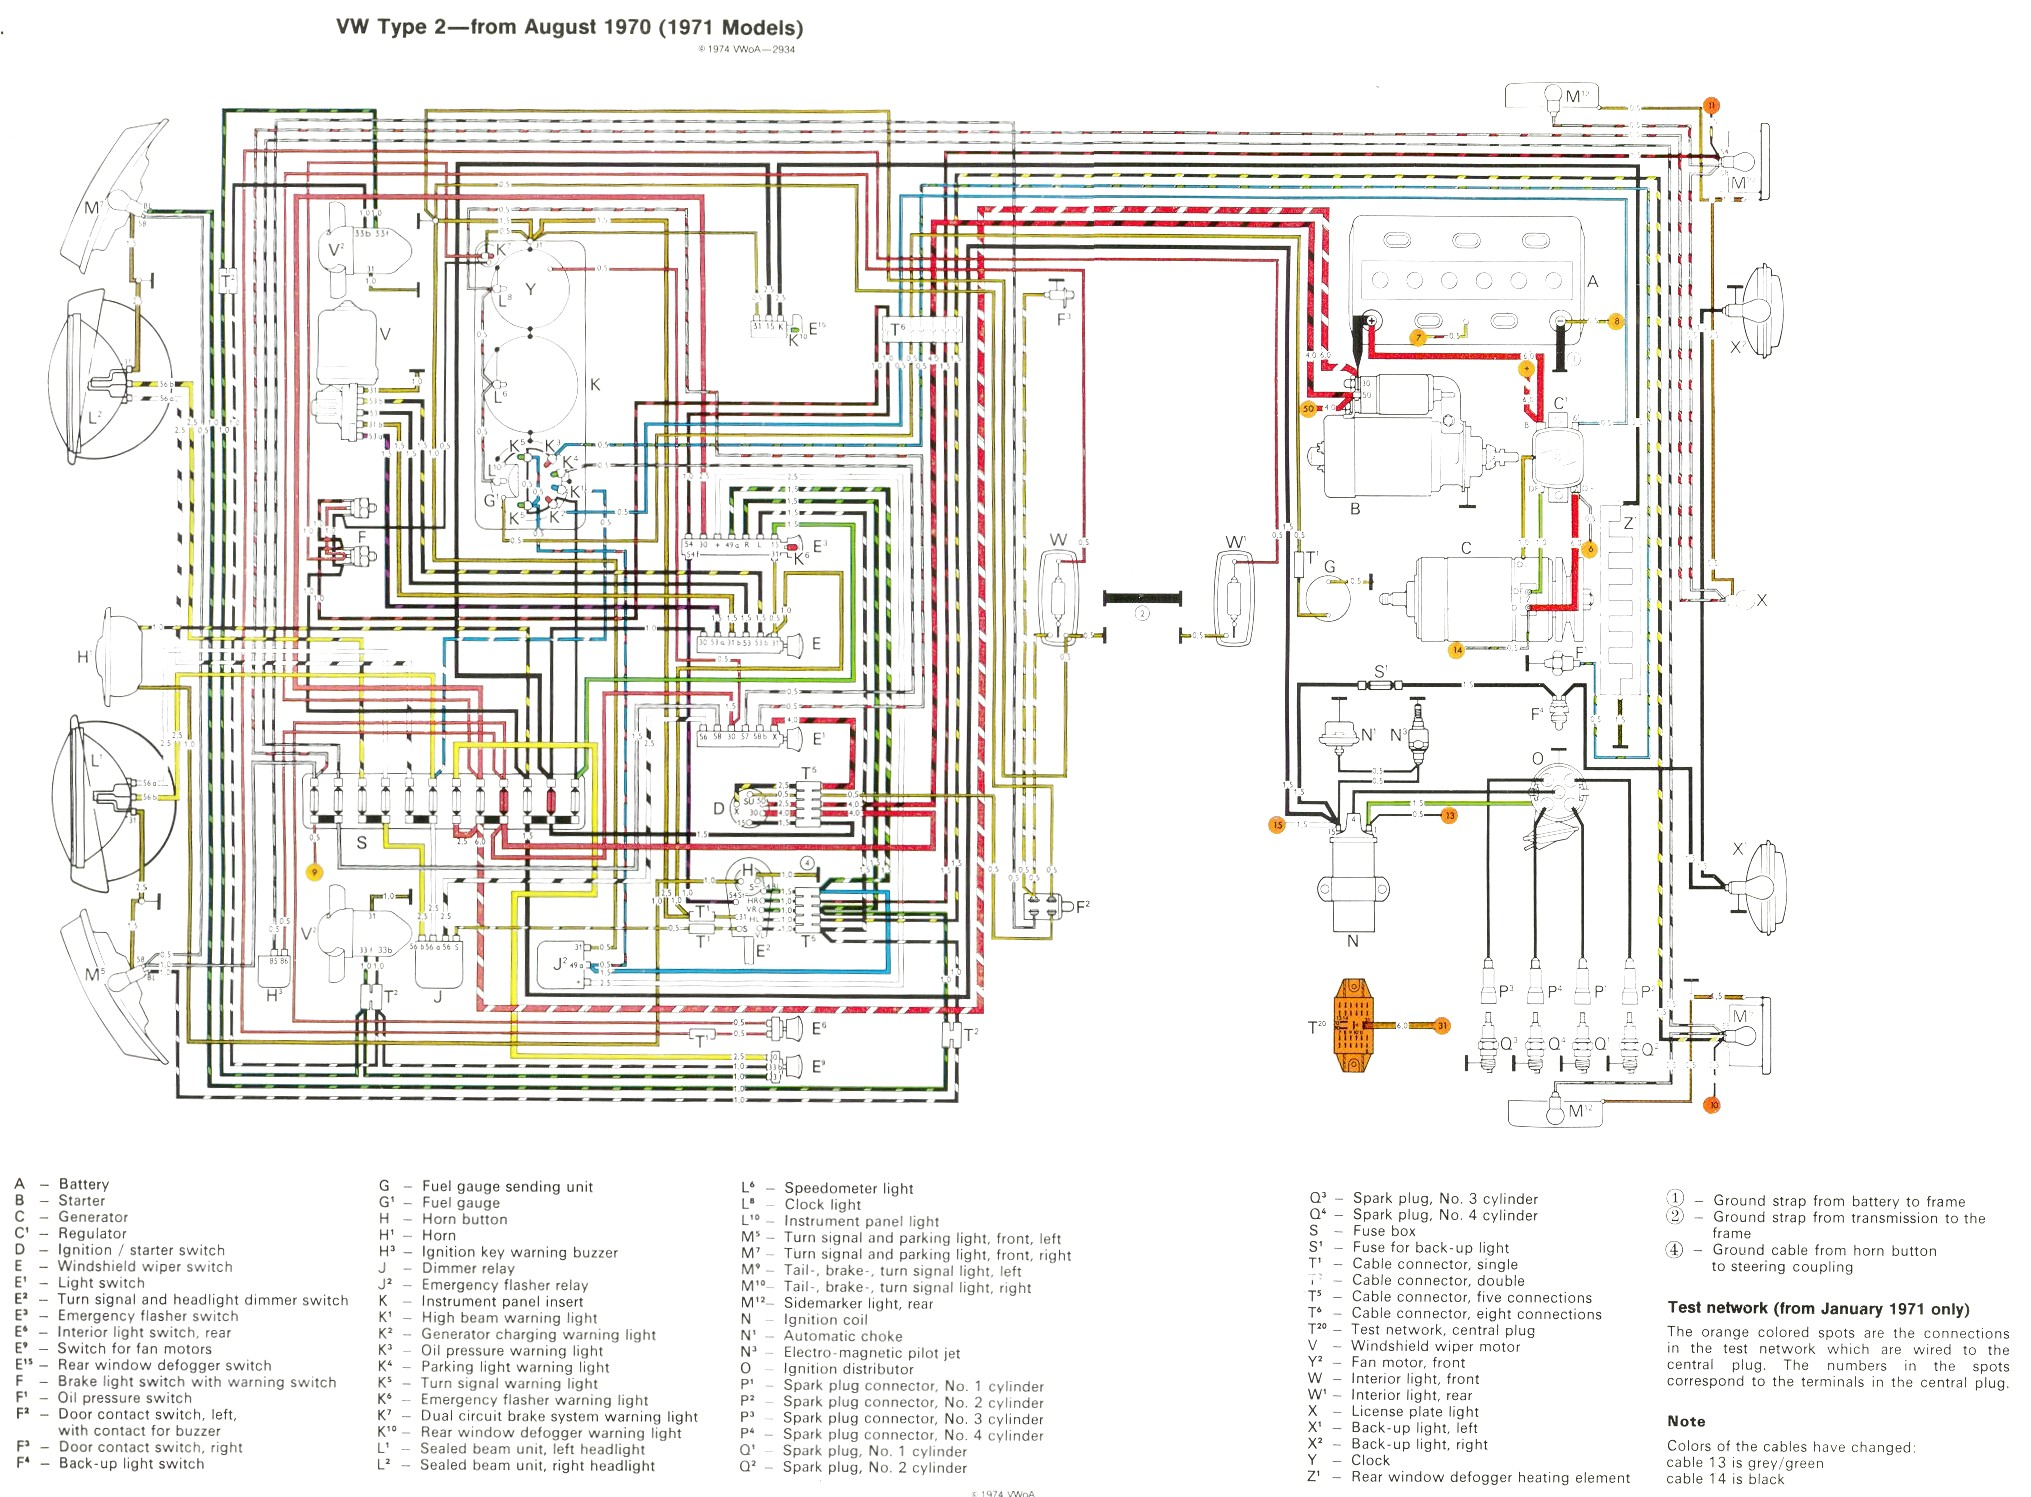 92 eagle talon wiring diagram eagle bus wiring diagram 1973 #9